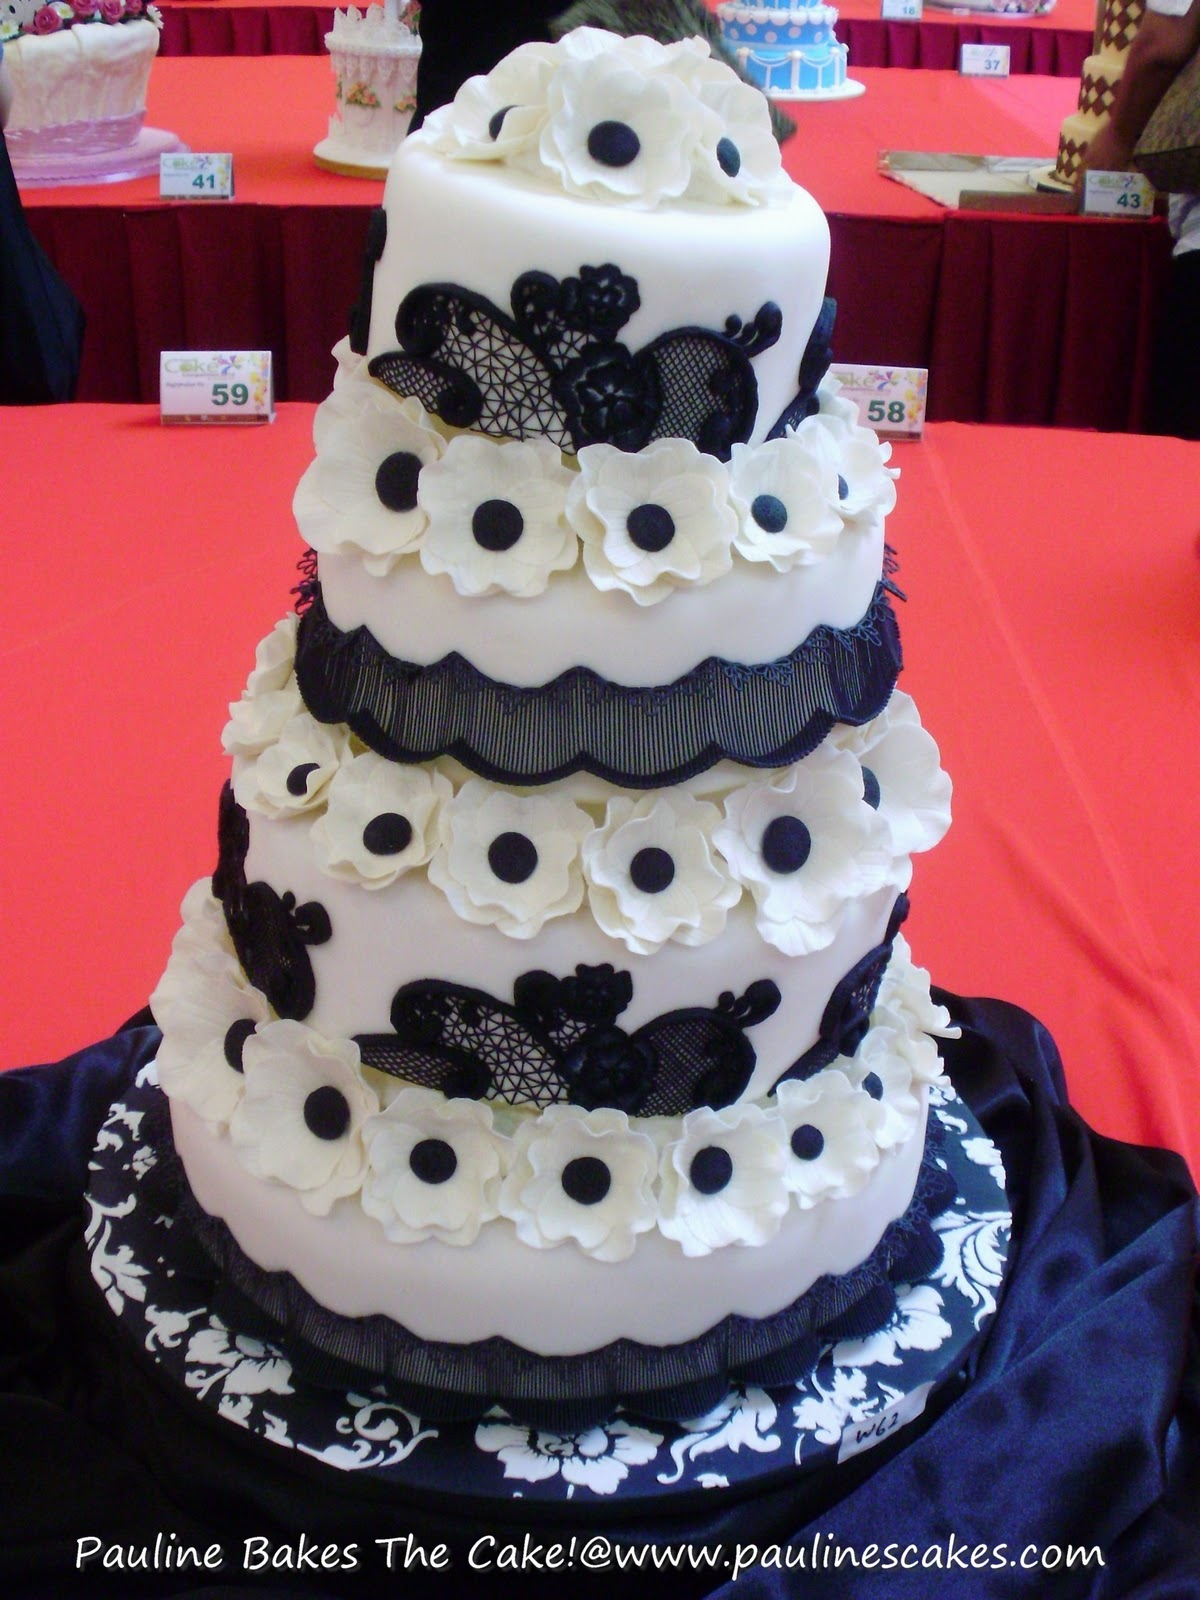 "PAULINE BAKES THE CAKE ""Black Lace"" Wedding Cake Entry"